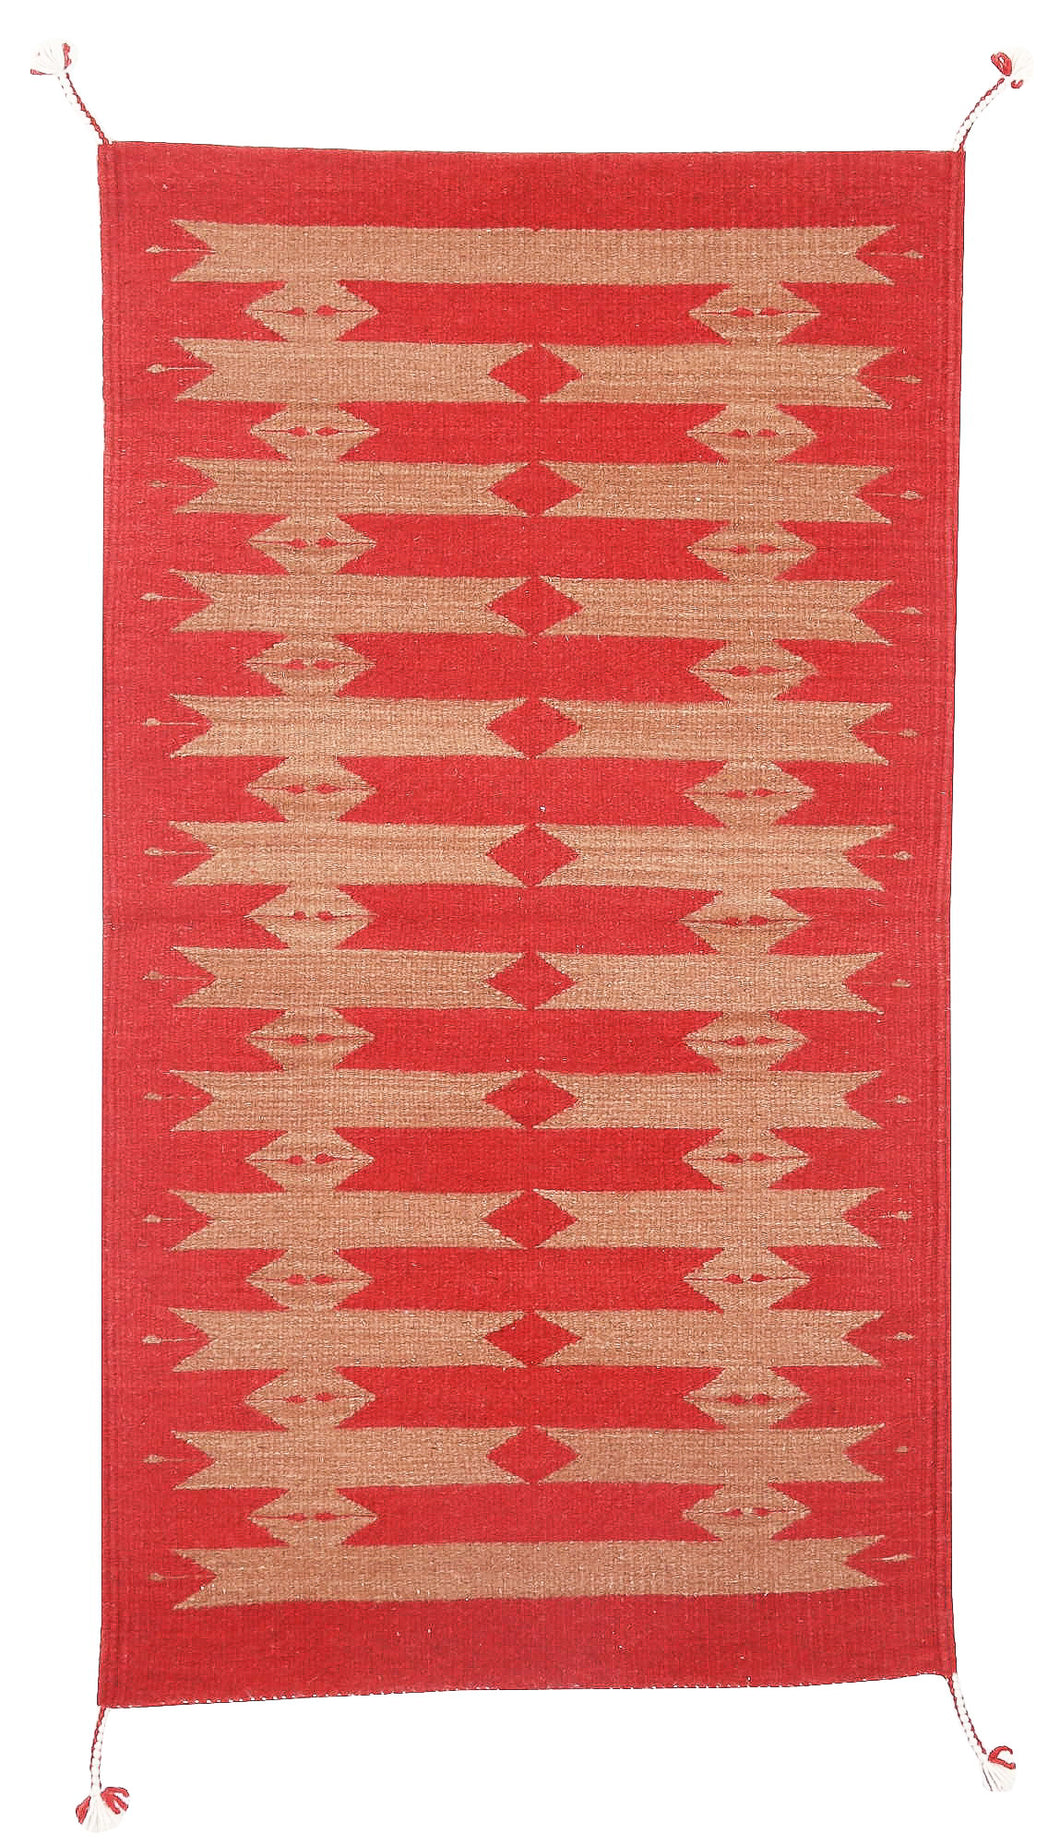 Handwoven Zapotec Indian Rug - Tetro Red Wool Oaxacan Textile